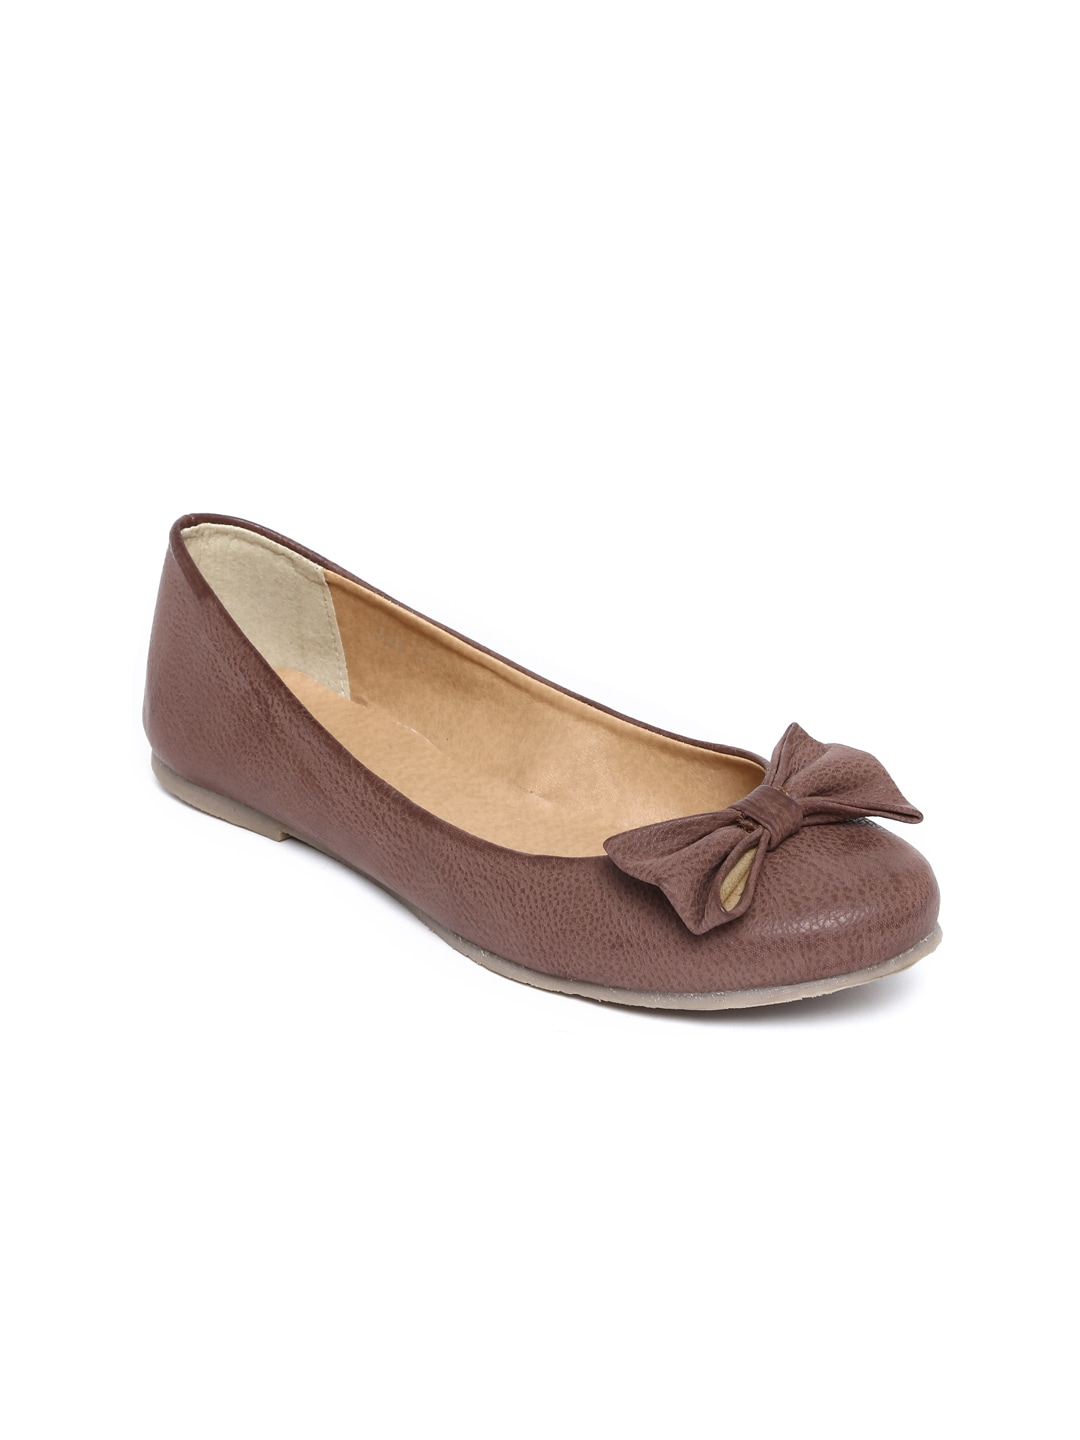 Zuicy Zuicy Women Dark Brown Ballerinas (Multicolor)